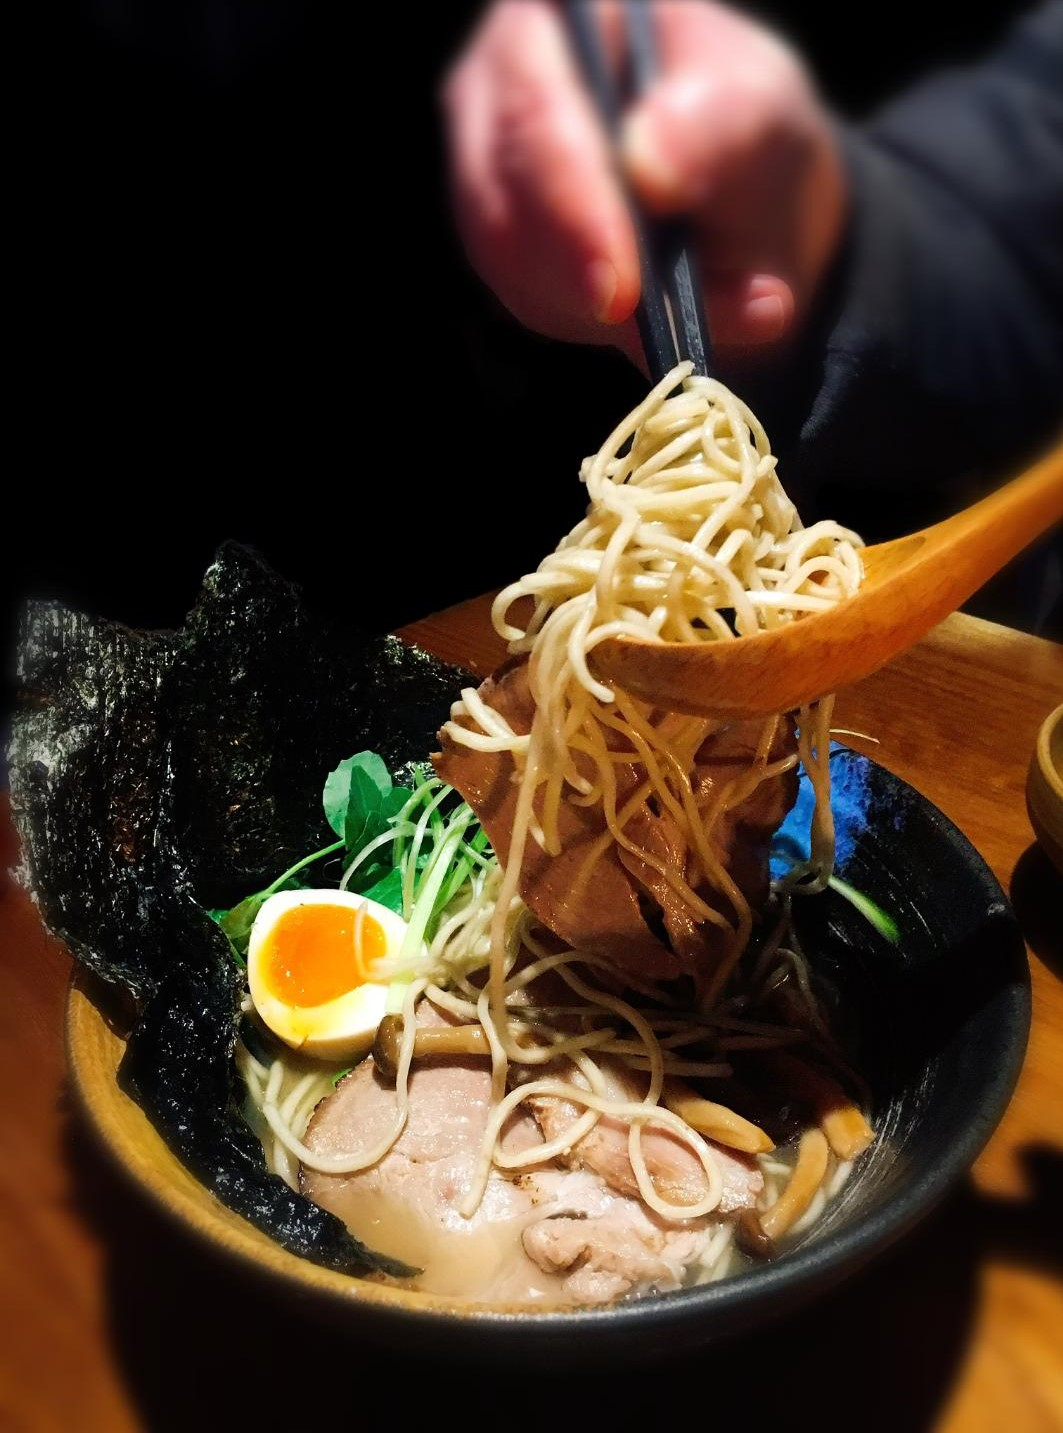 Umi - Truly escape the city centre mayhem here at Umi. It's a Japanese oasis serving up glorious bowls of ramen and sushi.www.umiedinburgh.comRead my review here